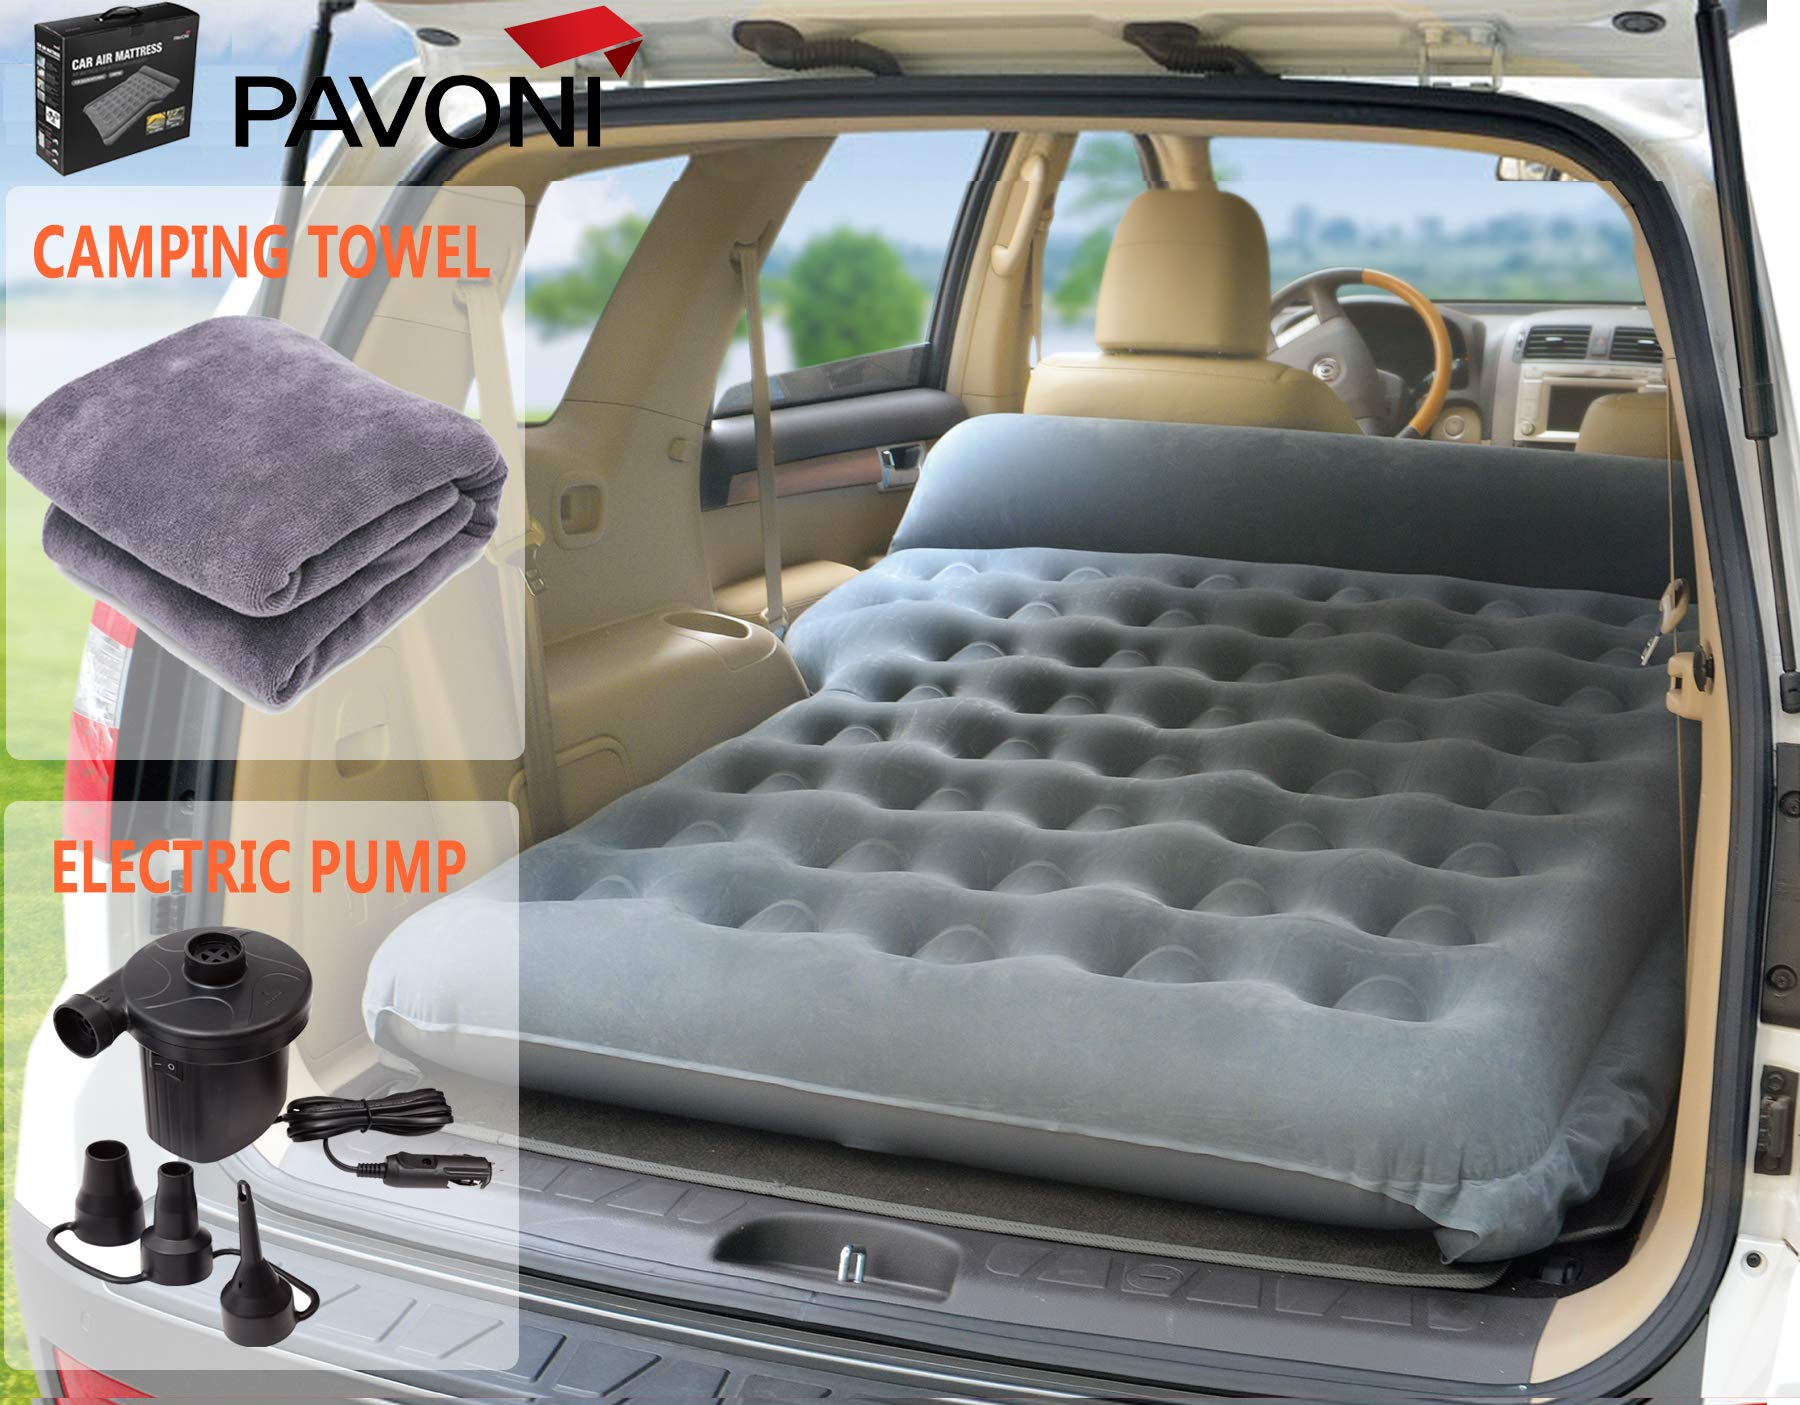 PAVONI Car Inflatable Air Camping Mattress Pad - with Electric Mattress Pump, Towel, Repair Patches & Storage Bag - Bed Mattress for SUVs, RVs & Minivans - Quick Inflation/Deflation - Durable & Comfy by PAVONI